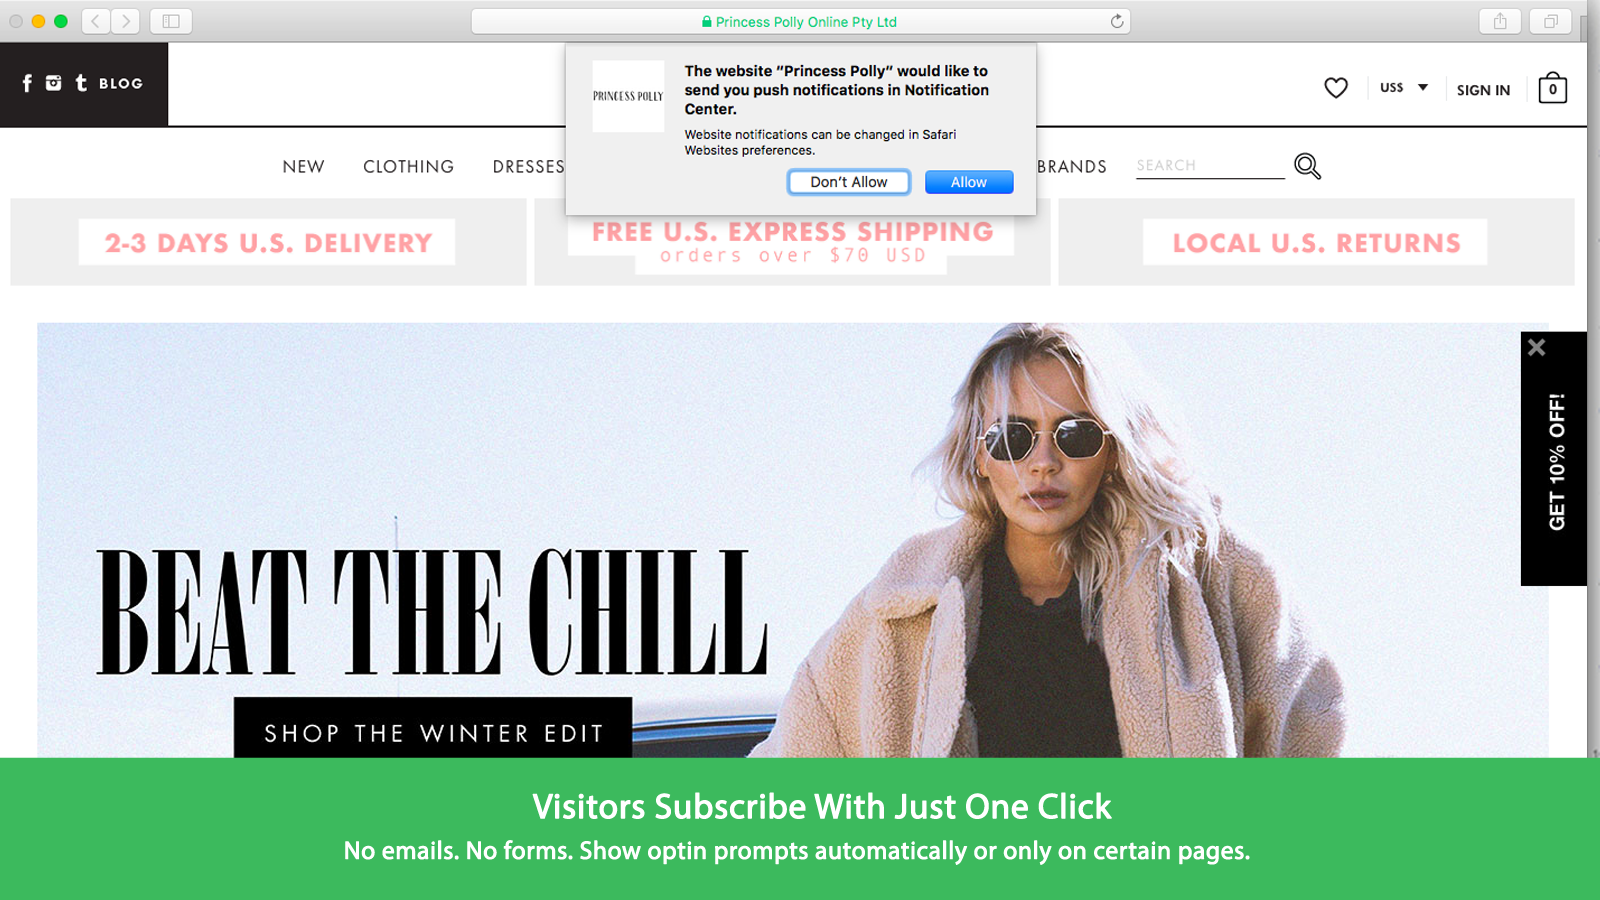 Visitors can subscribe by clicking on opt-in prompts